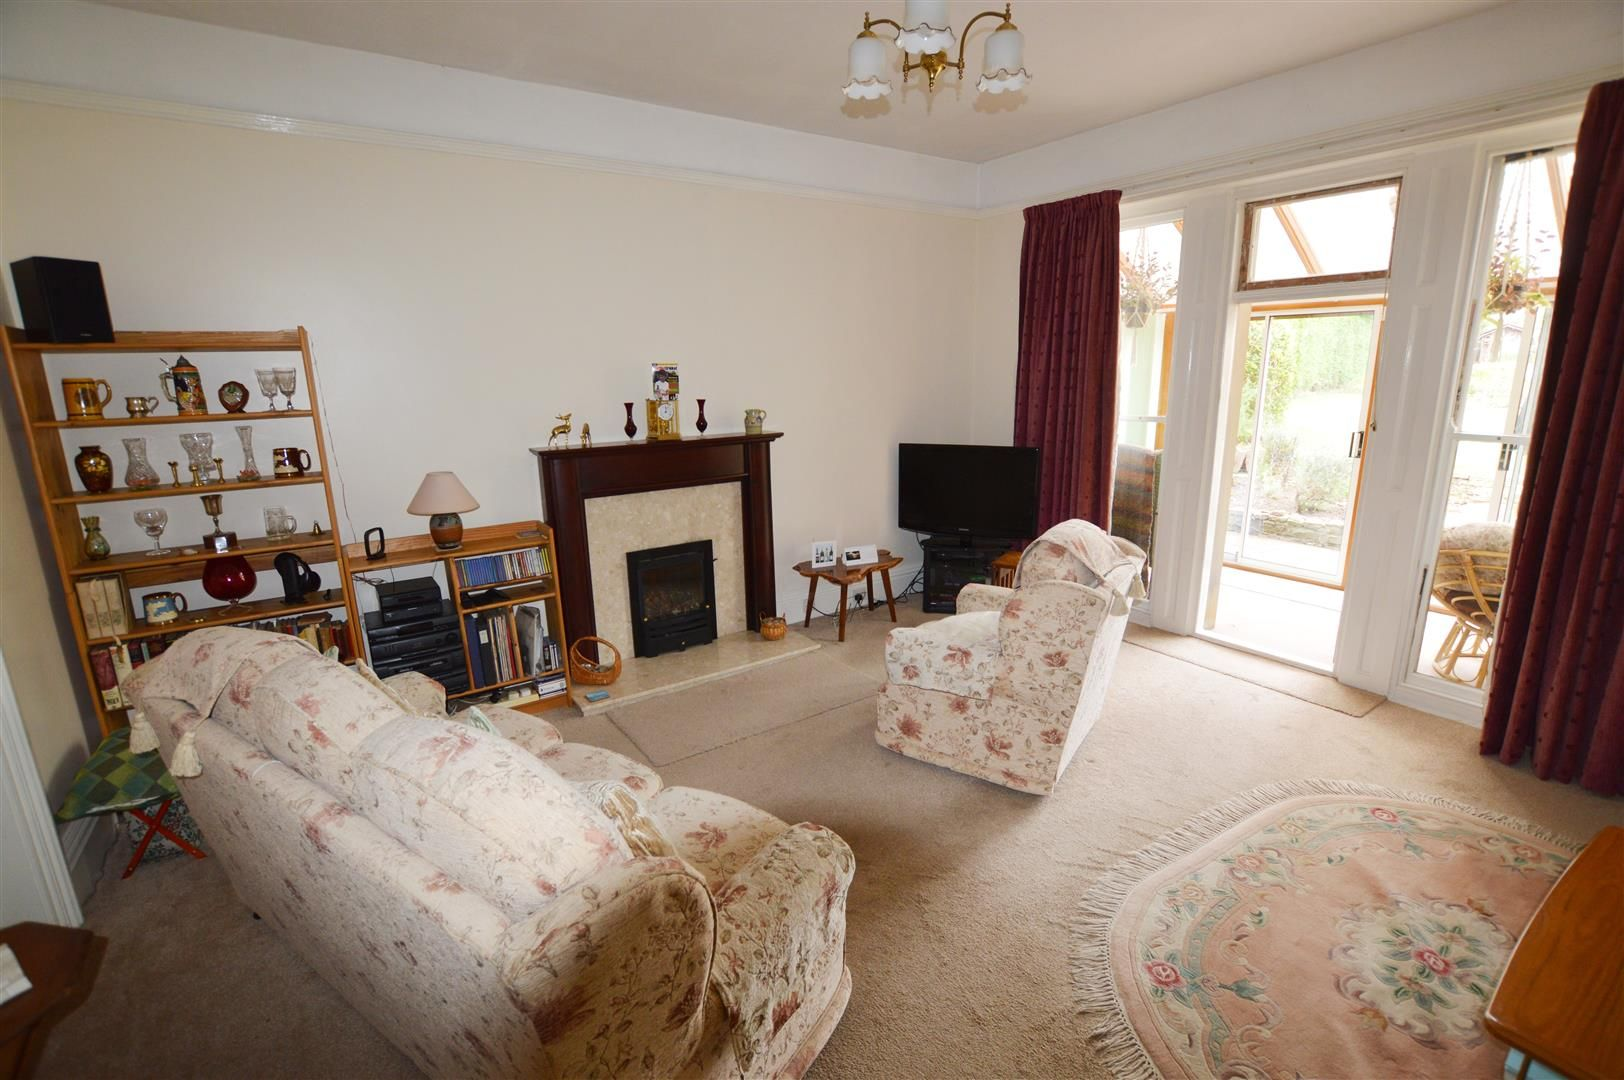 6 bed detached for sale in Leominster 4